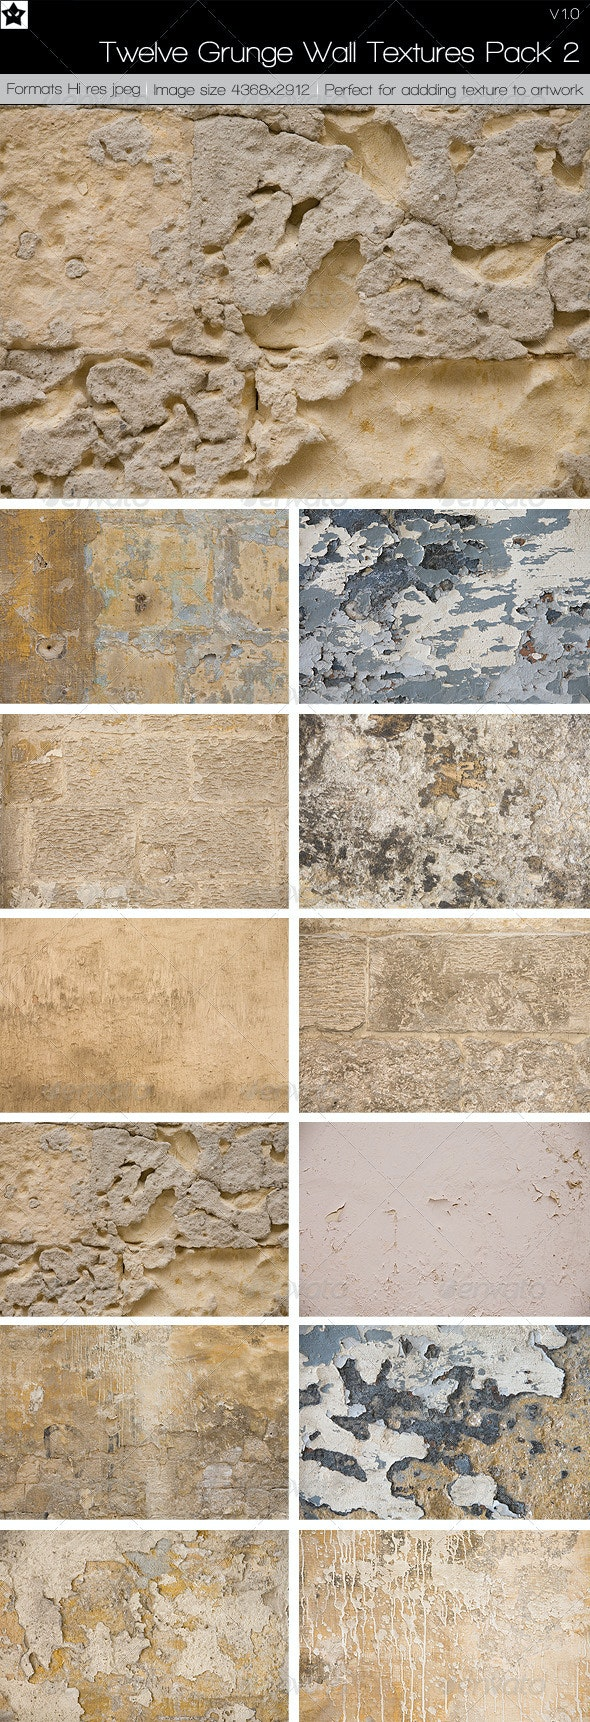 12 Grunge Wall Textures Pack 2 - Stone Textures